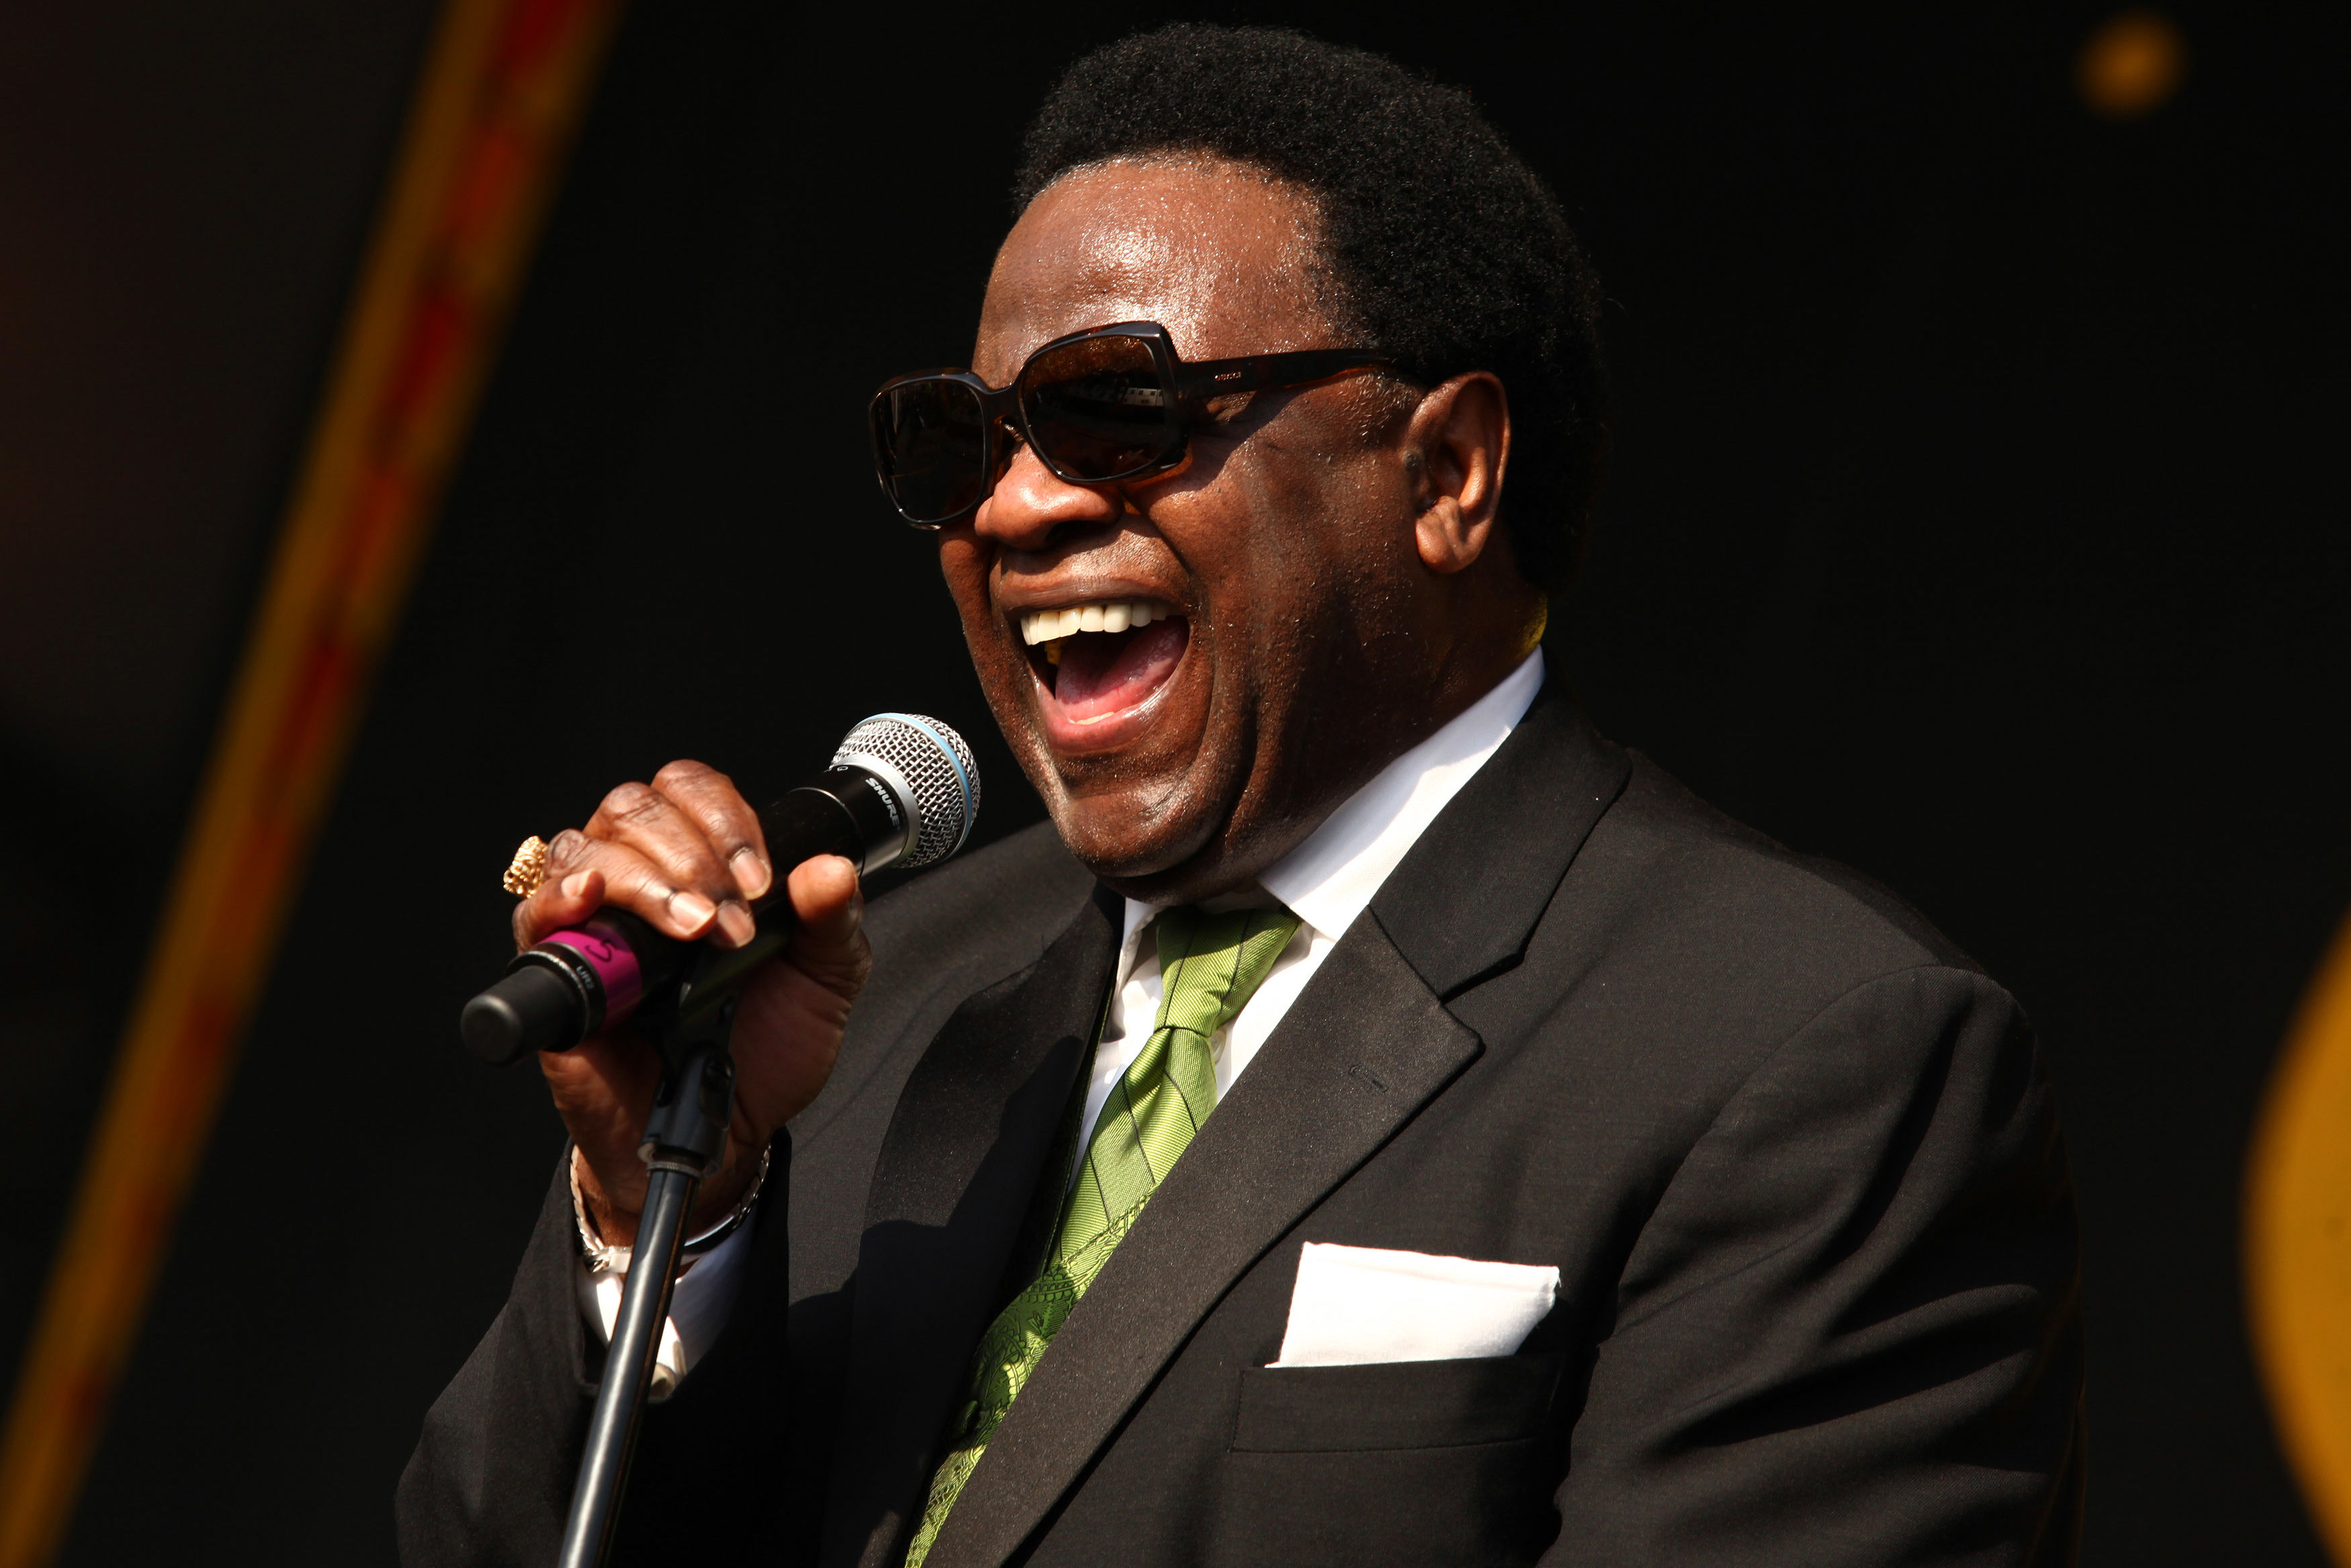 WATCH: See Soul Singer Al Green Preach at His Church in Memphis